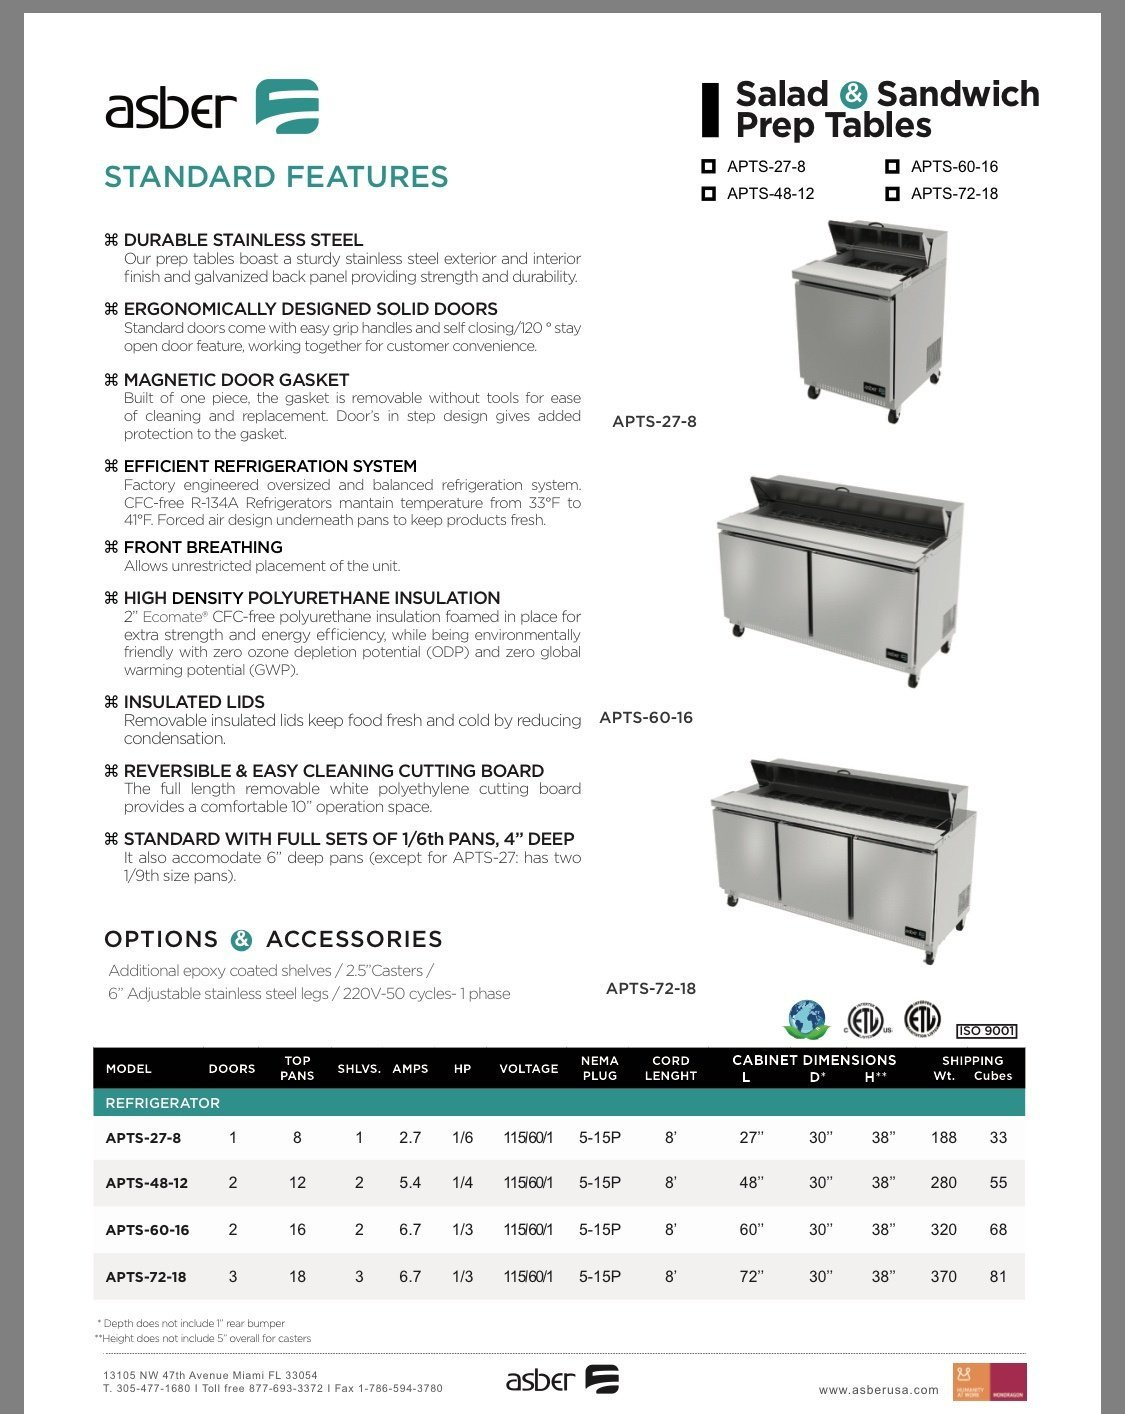 New Asber Sandwich Prep Table 2 years parts and labor 5 years Compressor  Staring Price @ $1000 and Up